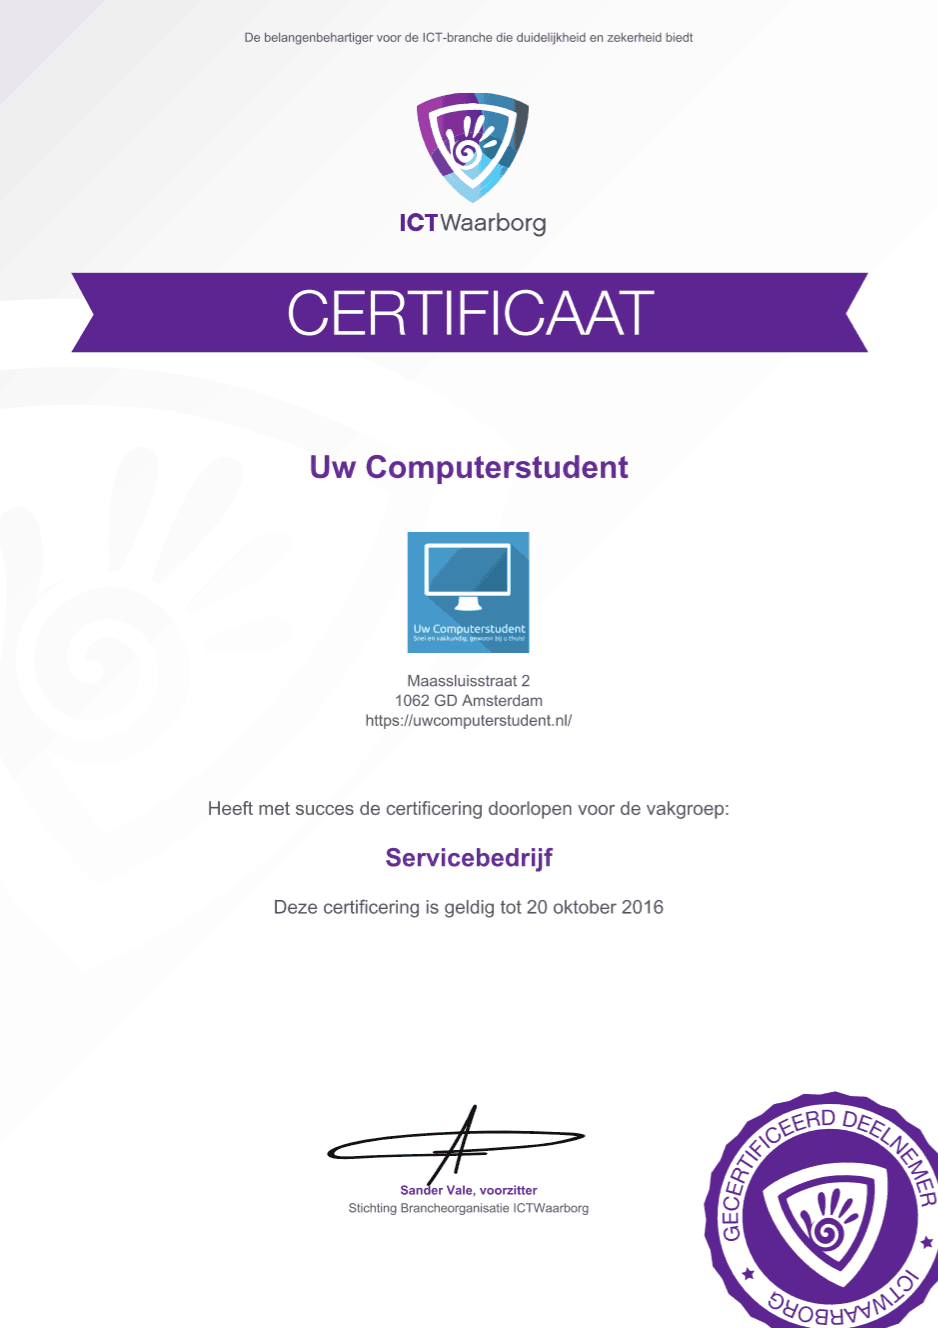 Uw Computerstudent is ICTWaarborg gecertificeerd